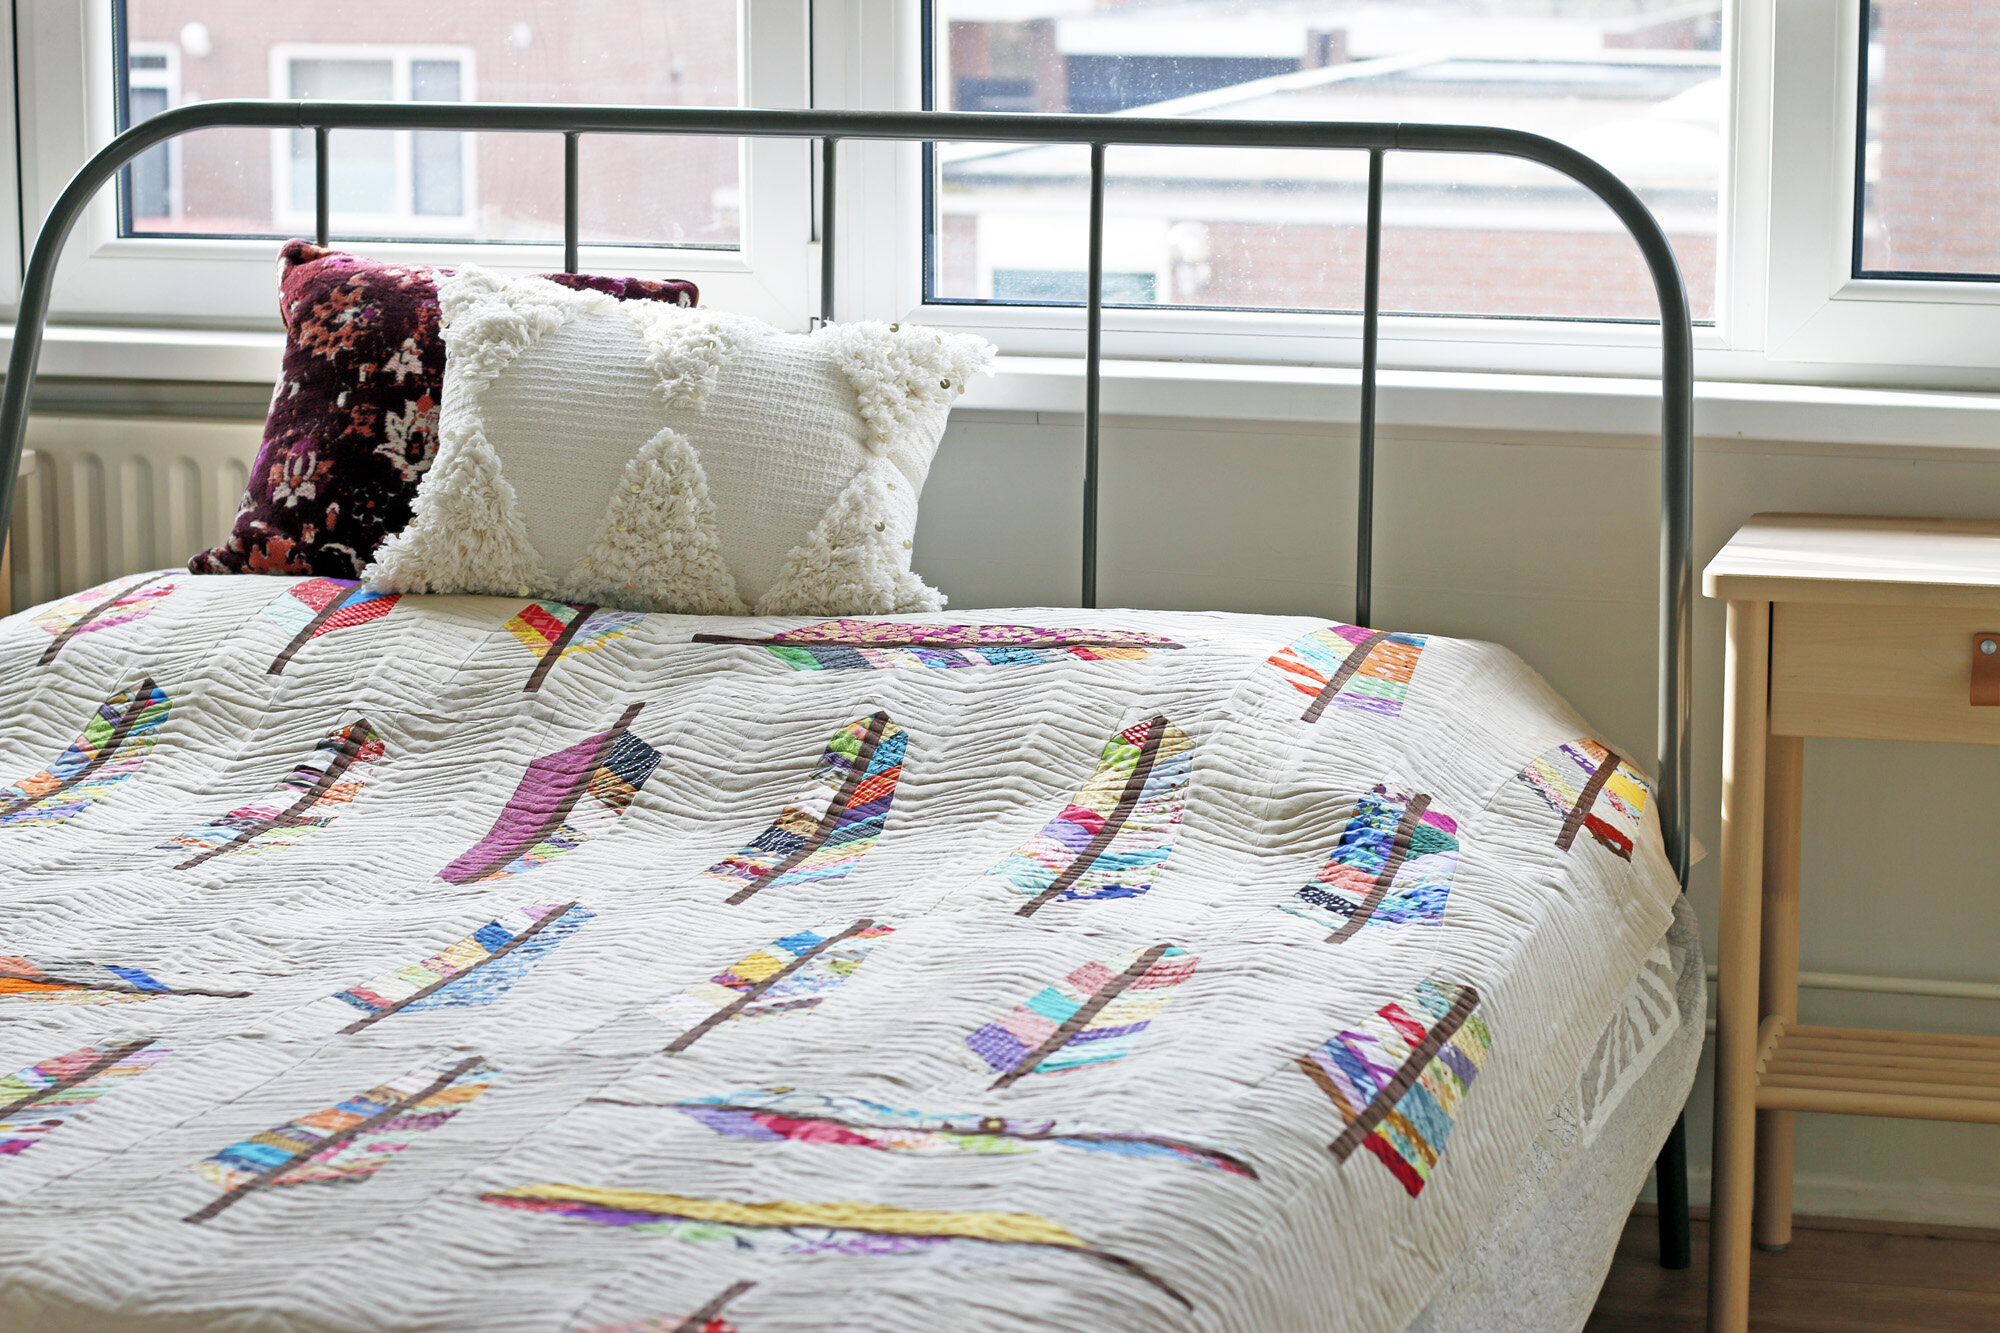 Feather Bed by Svea. Stitched in Color.jpg